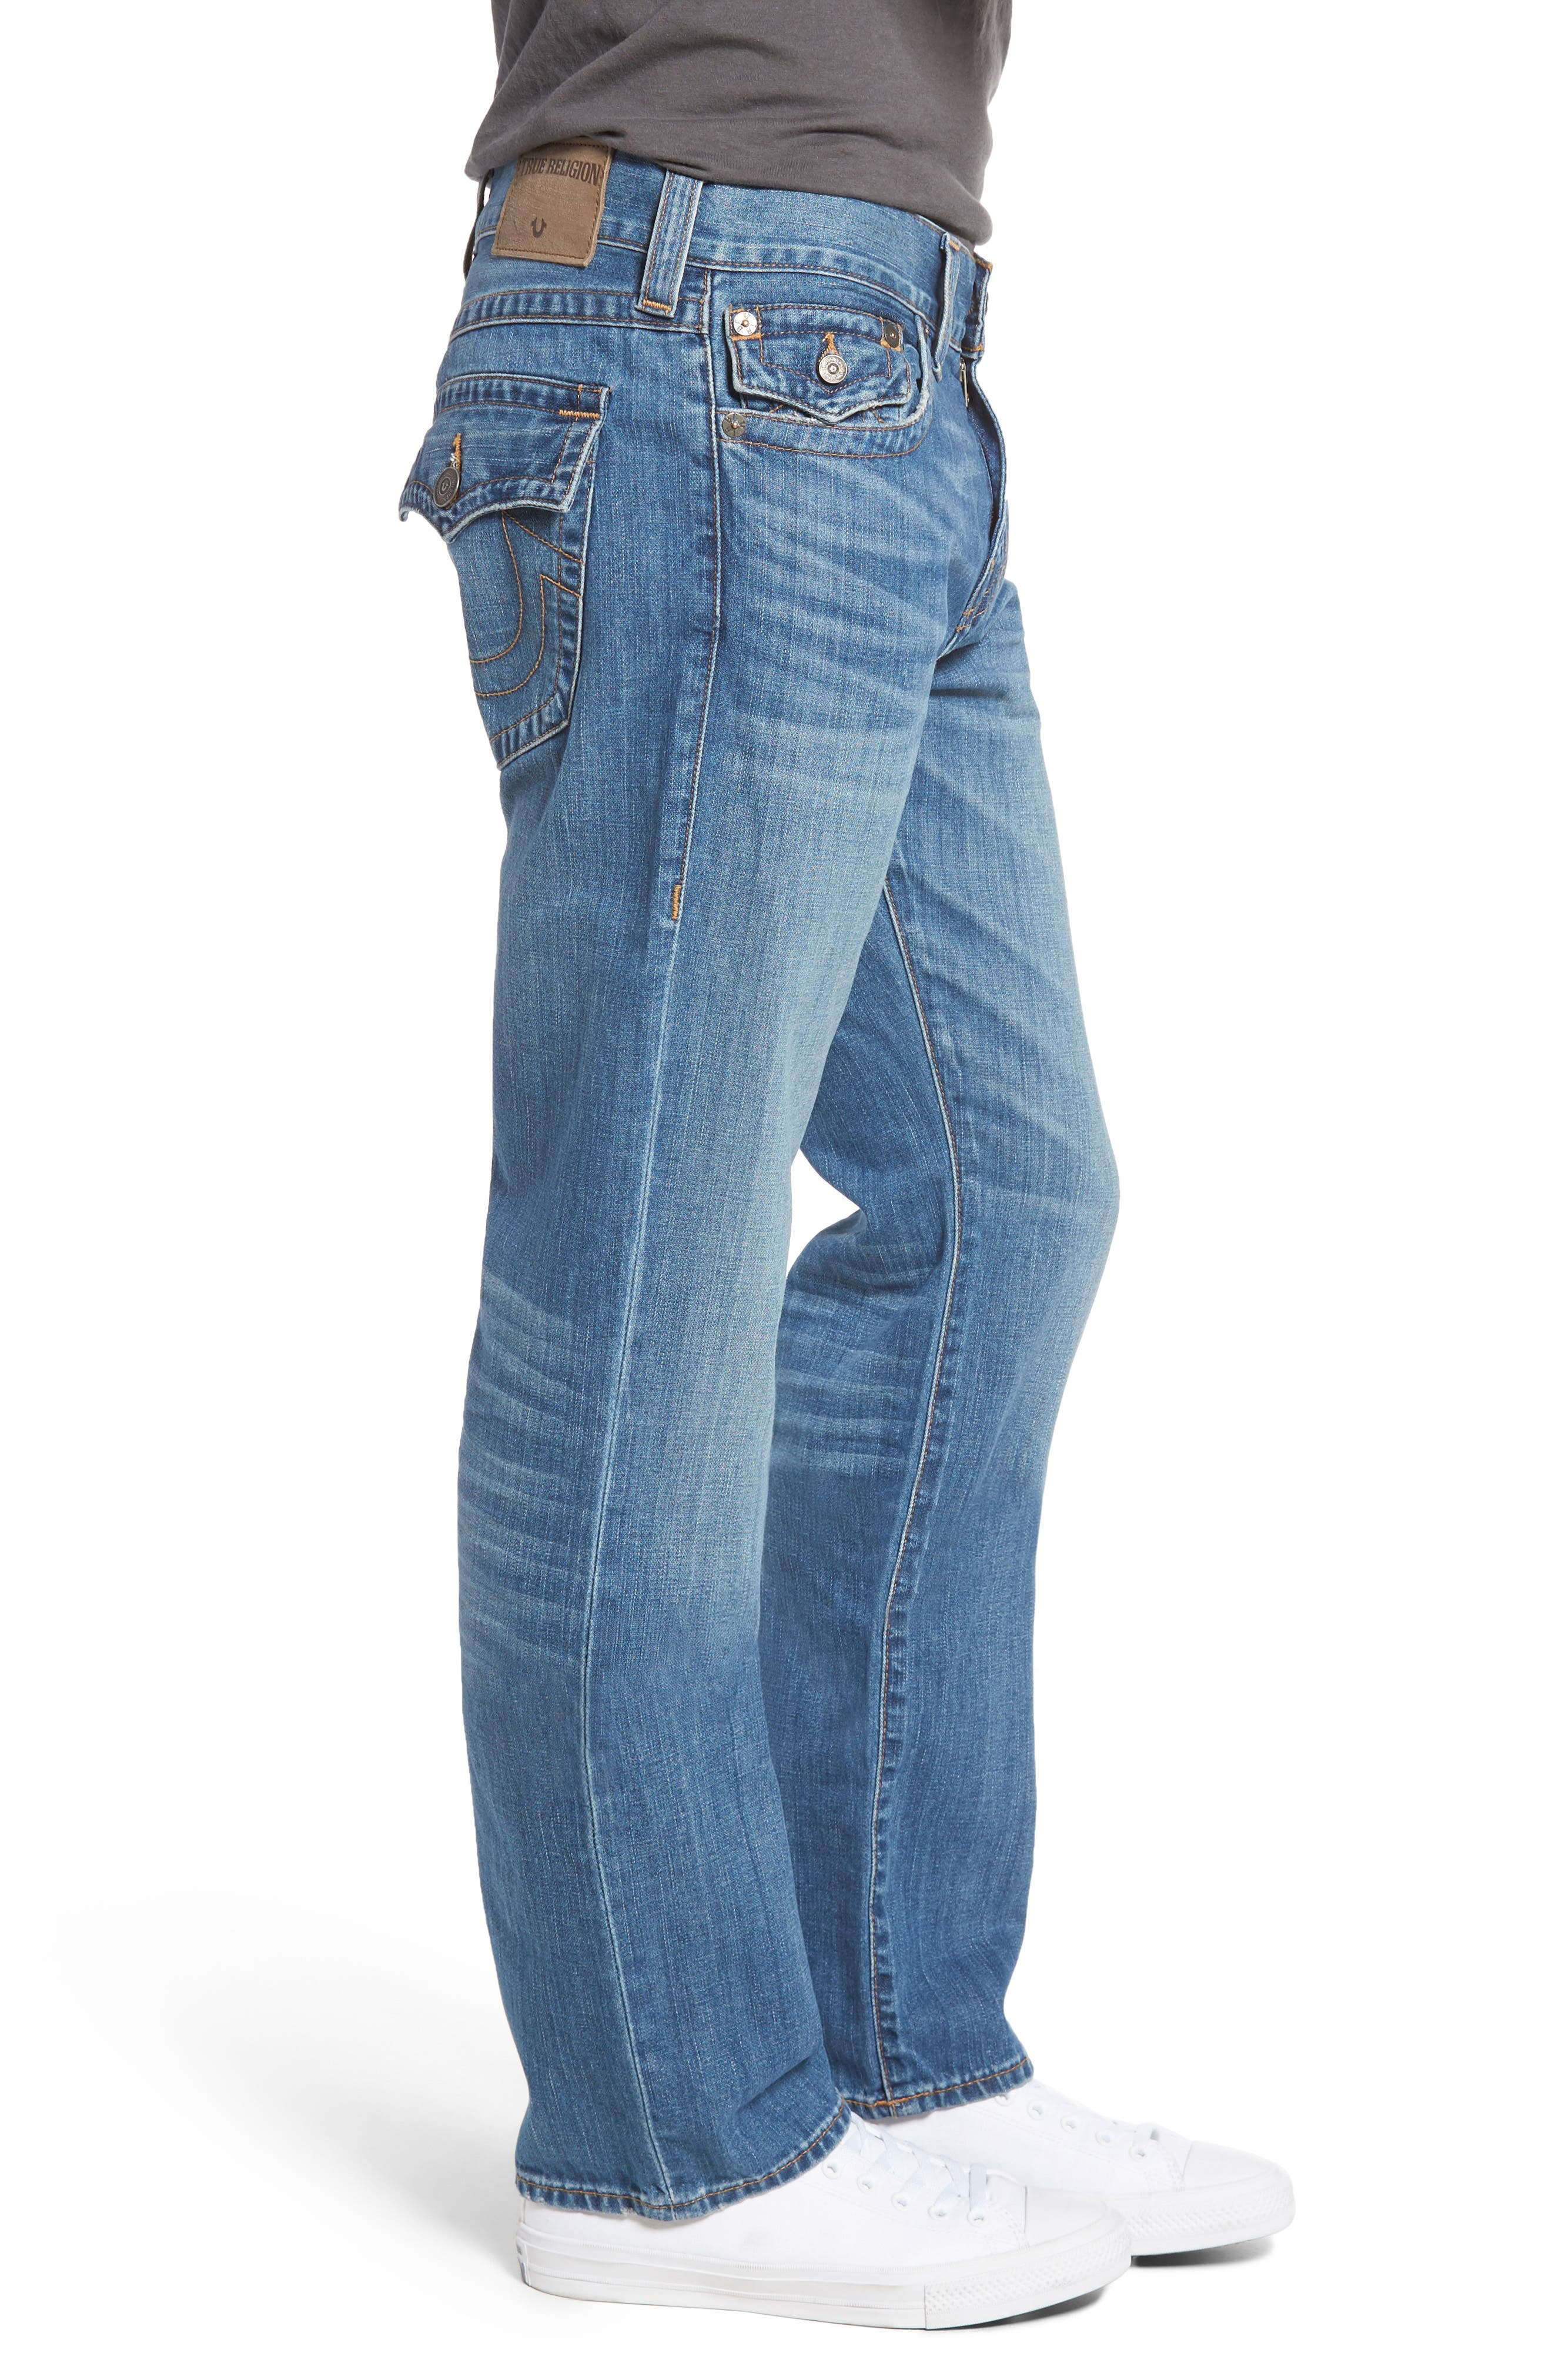 Ricky Relaxed Fit Jeans,                             Alternate thumbnail 3, color,                             403